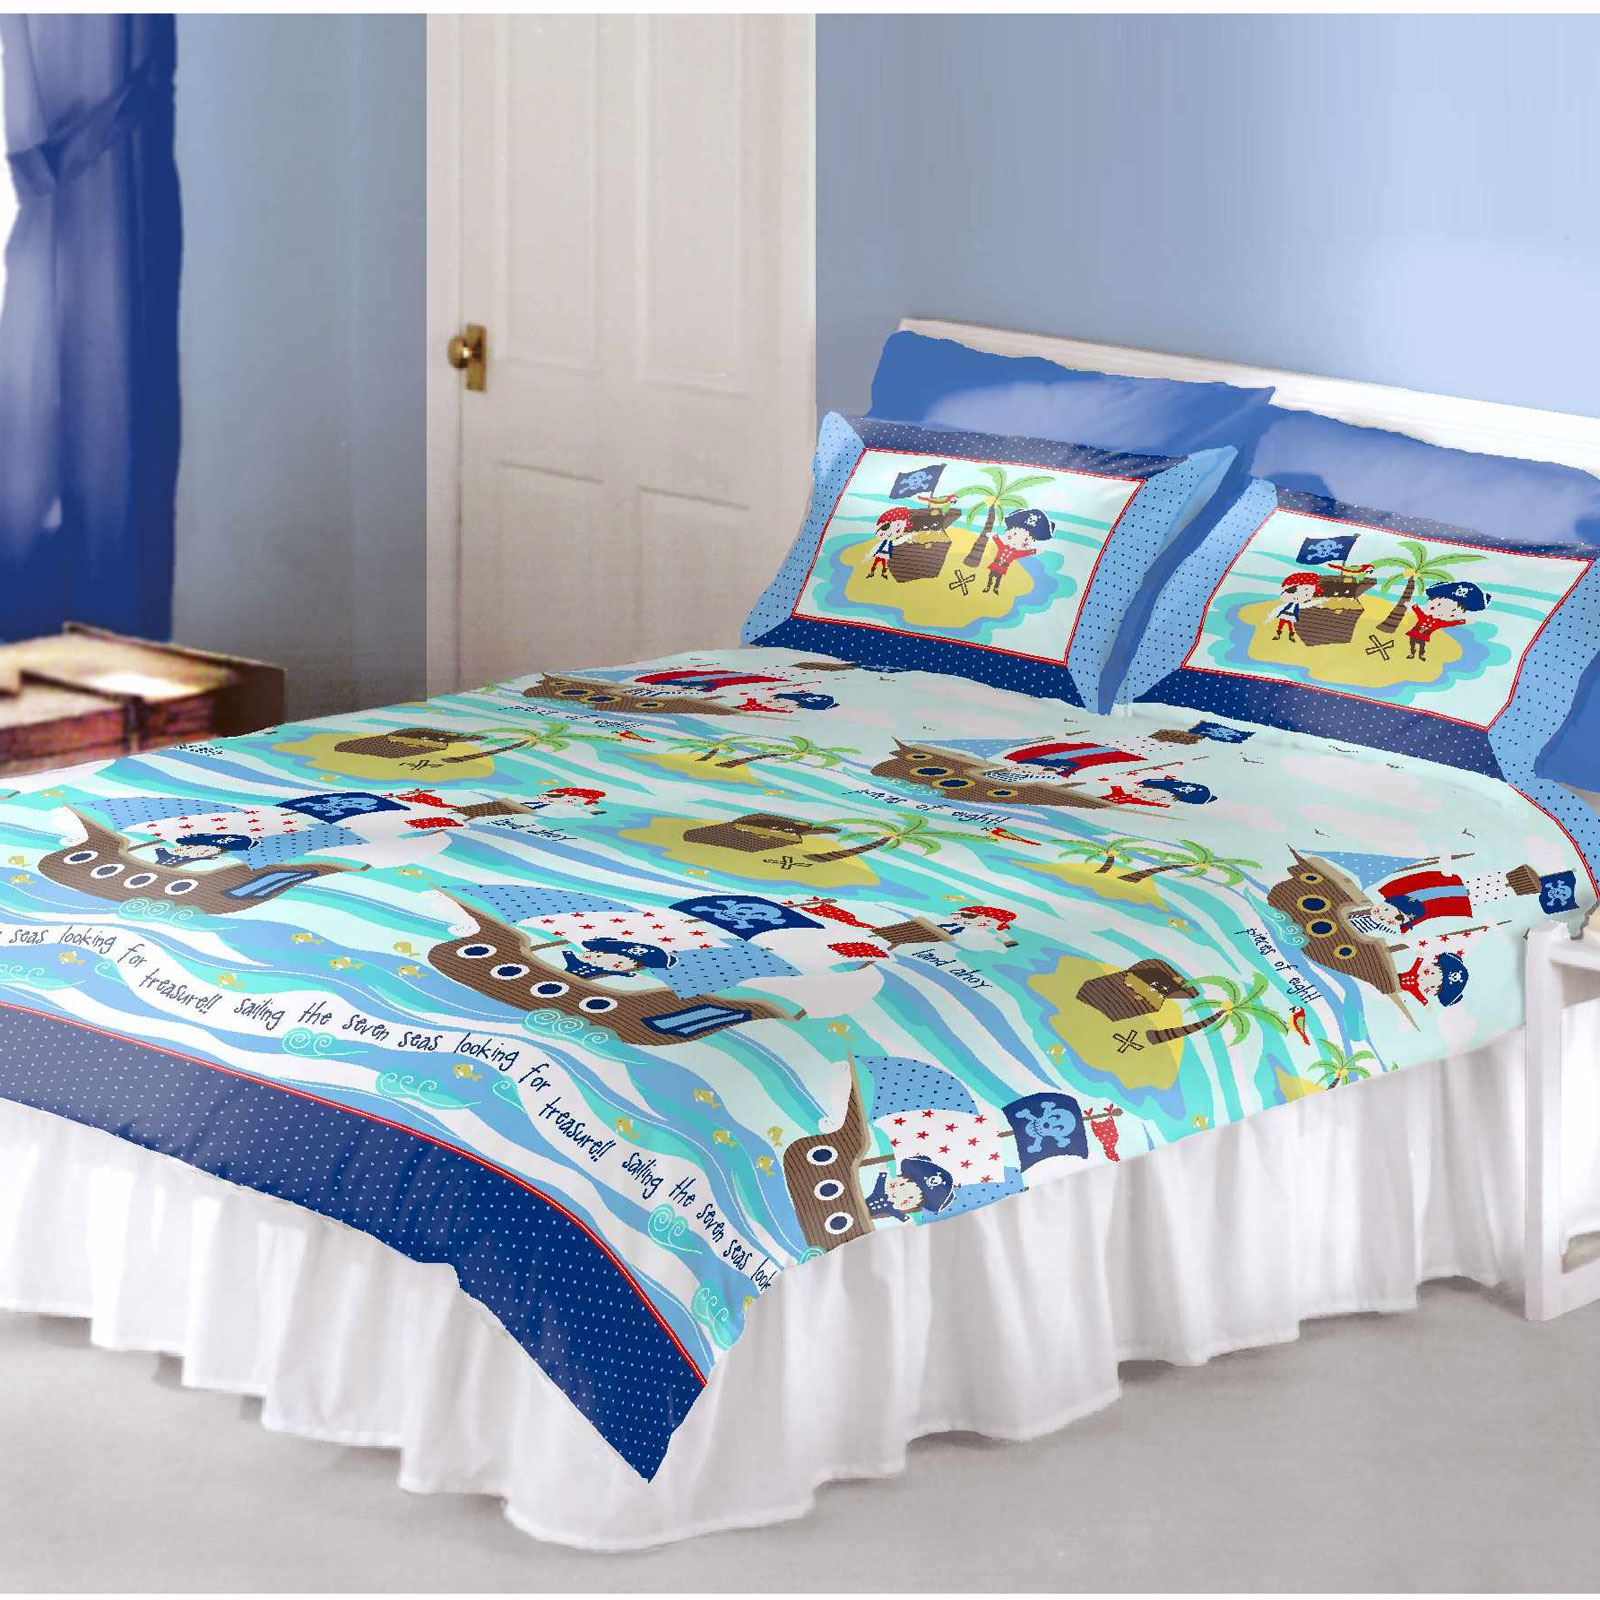 EXCLUSIVE DOUBLE DUVET COVER SETS KIDS DESIGNS BEDDING FOR BOYS